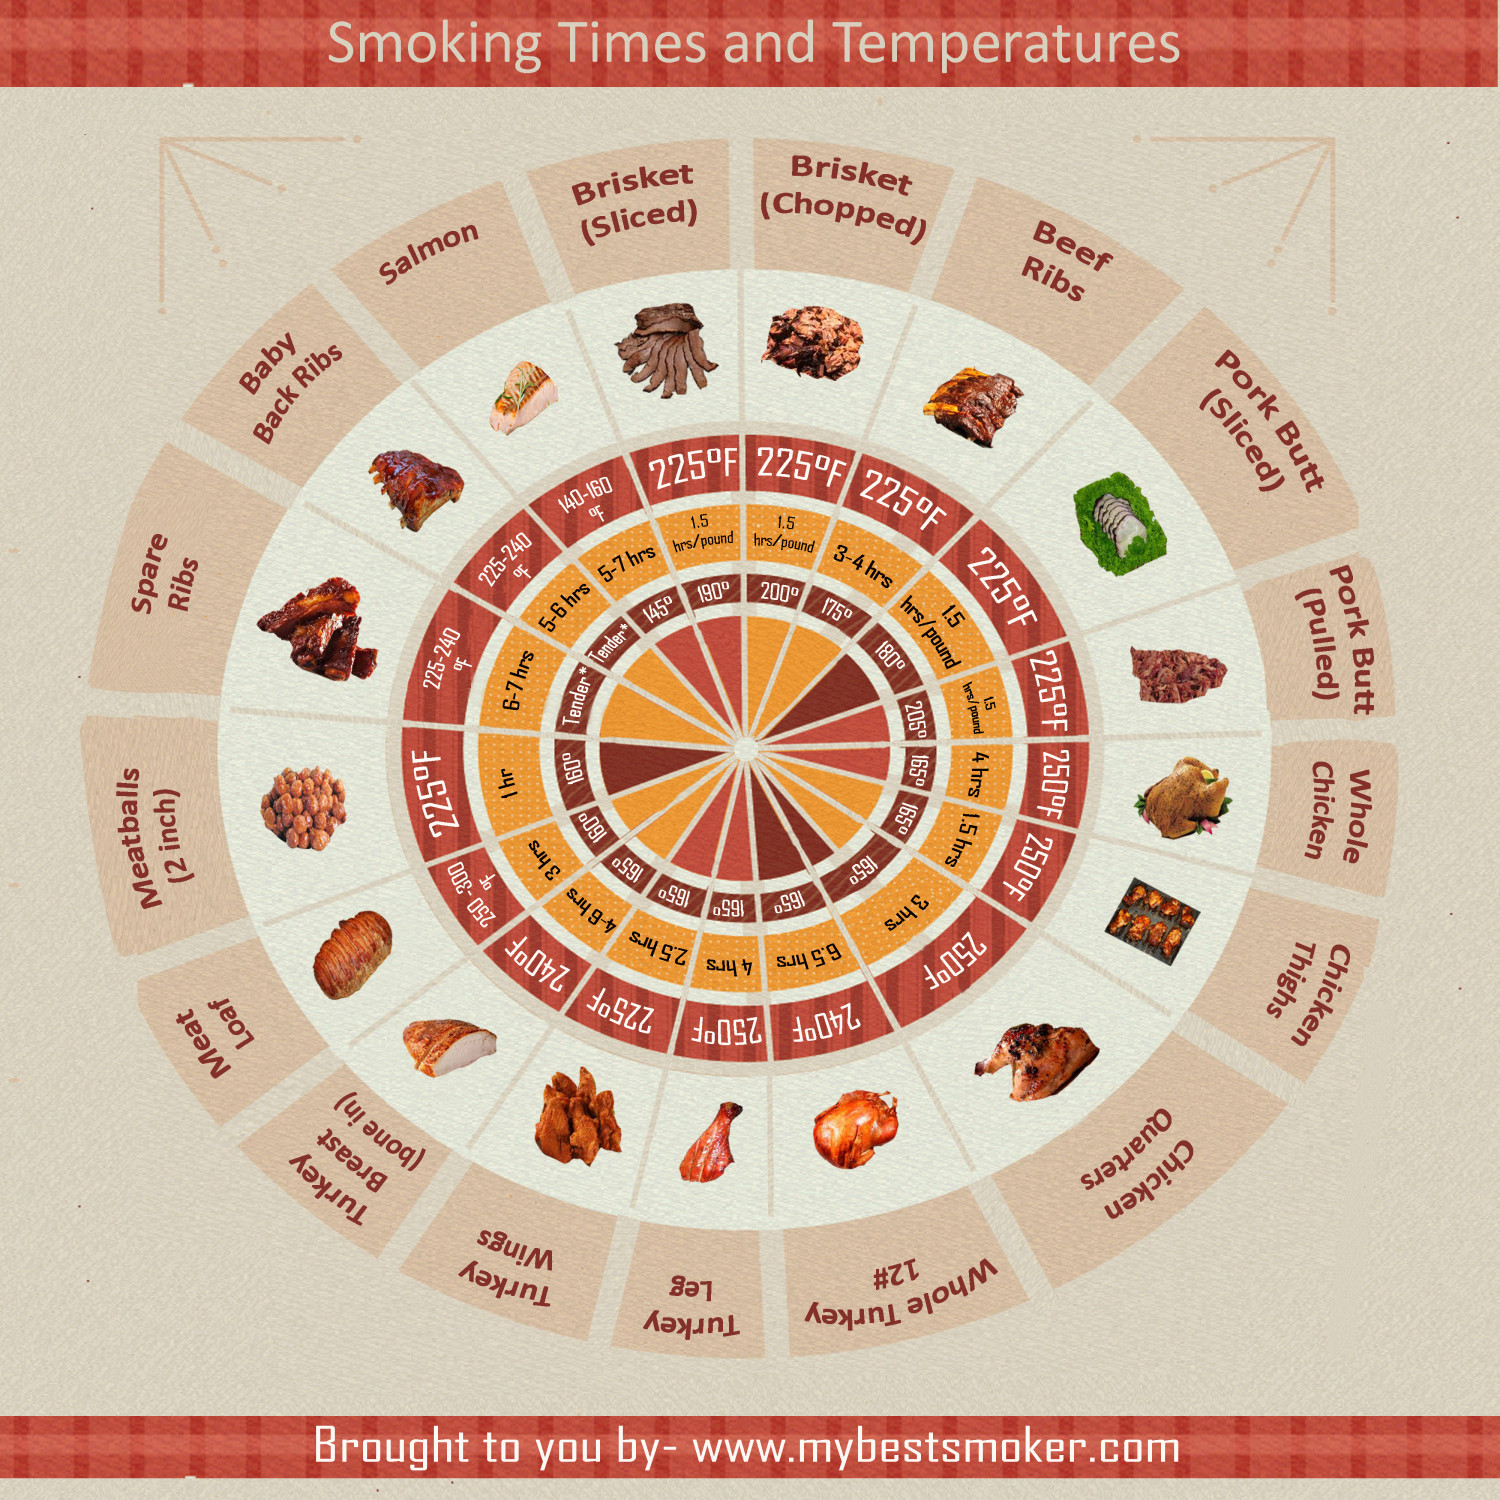 Smoking Times and Temperatures Infographic